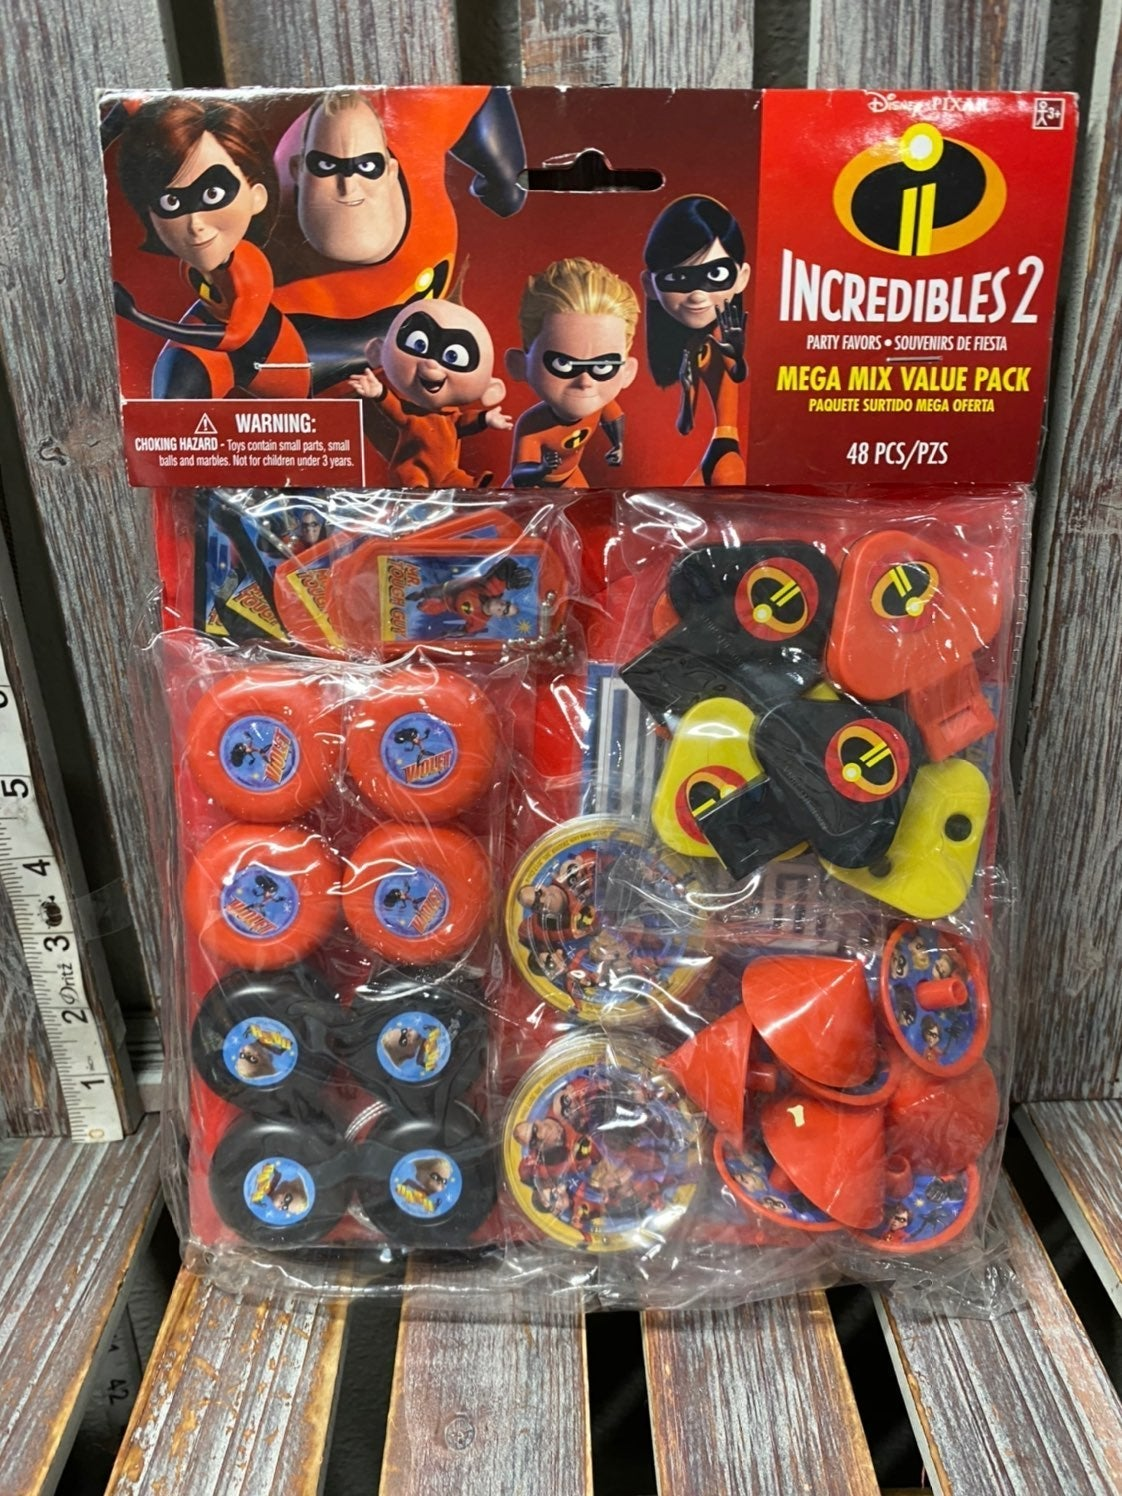 Incredibles 2 Party Favors Mega Mix Pack